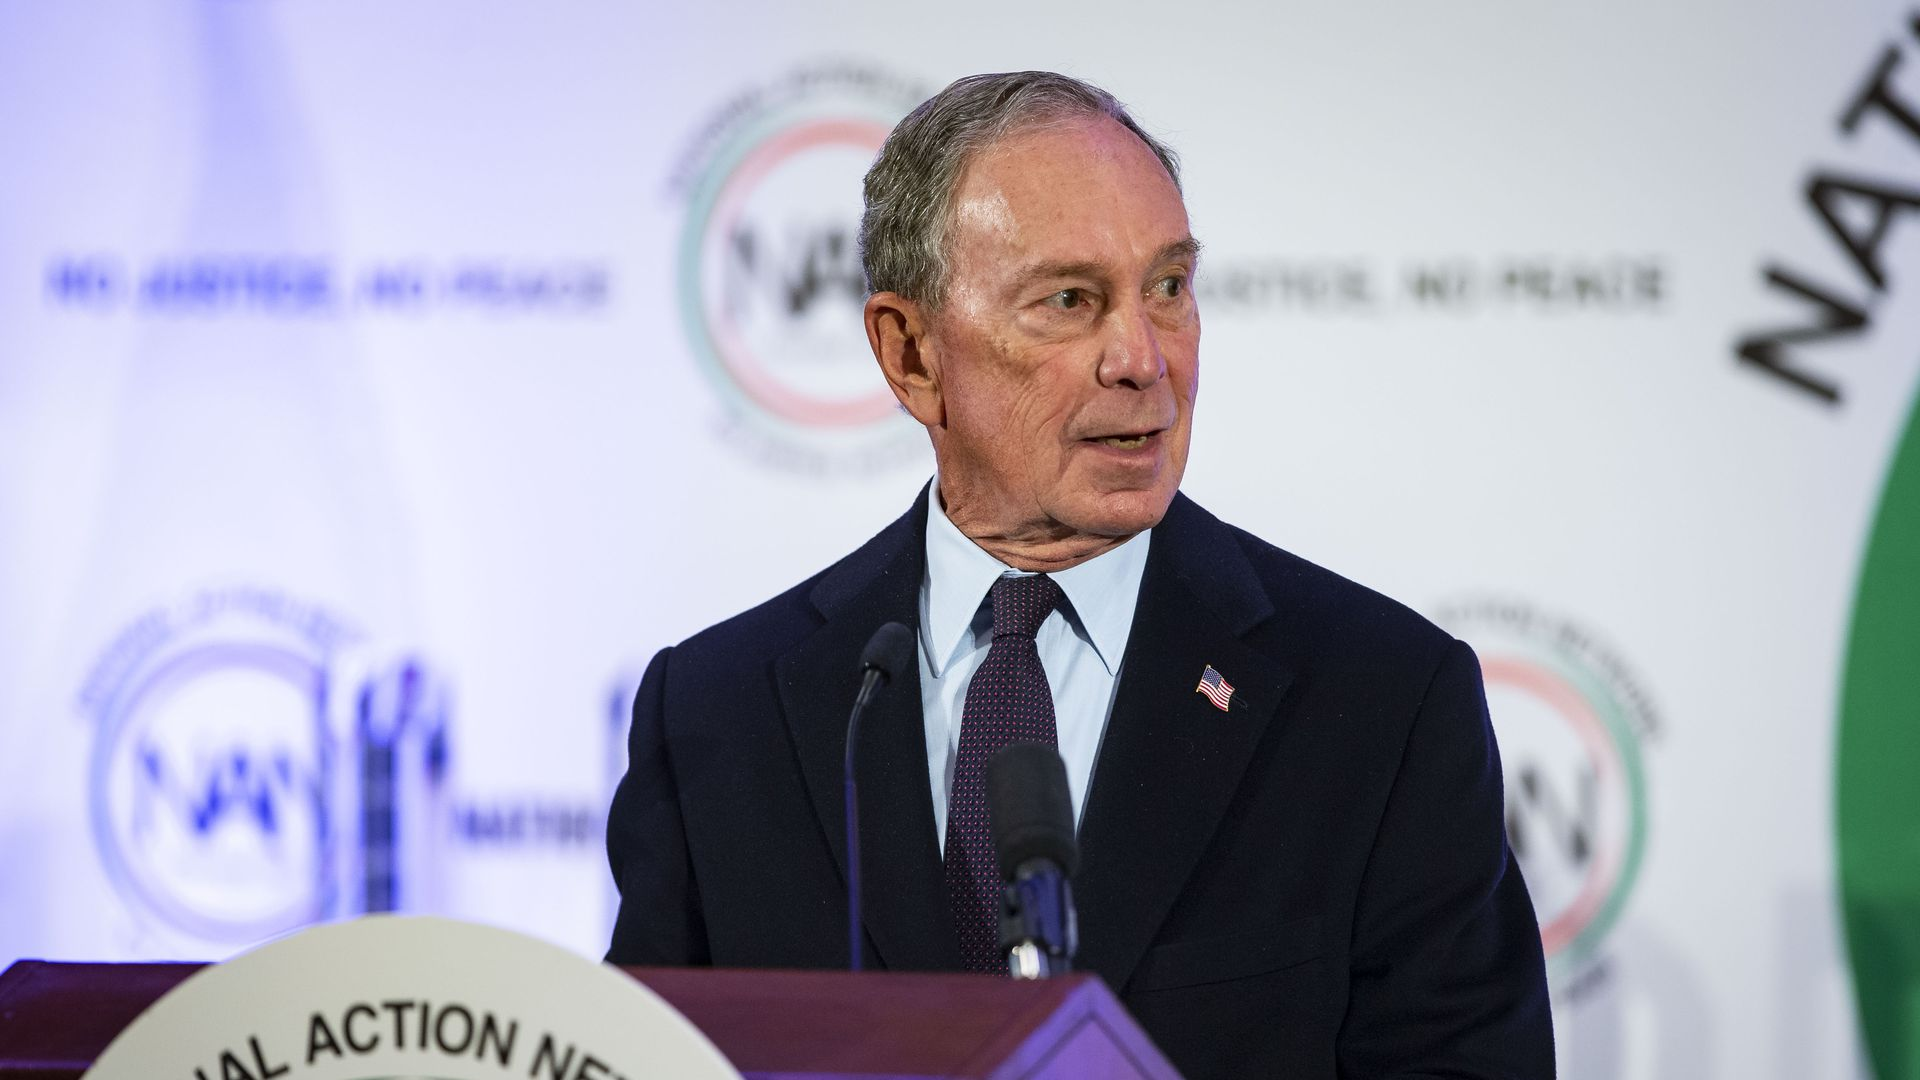 This is Michael Bloomberg, the billionaire who was formerly the mayor of New York City.